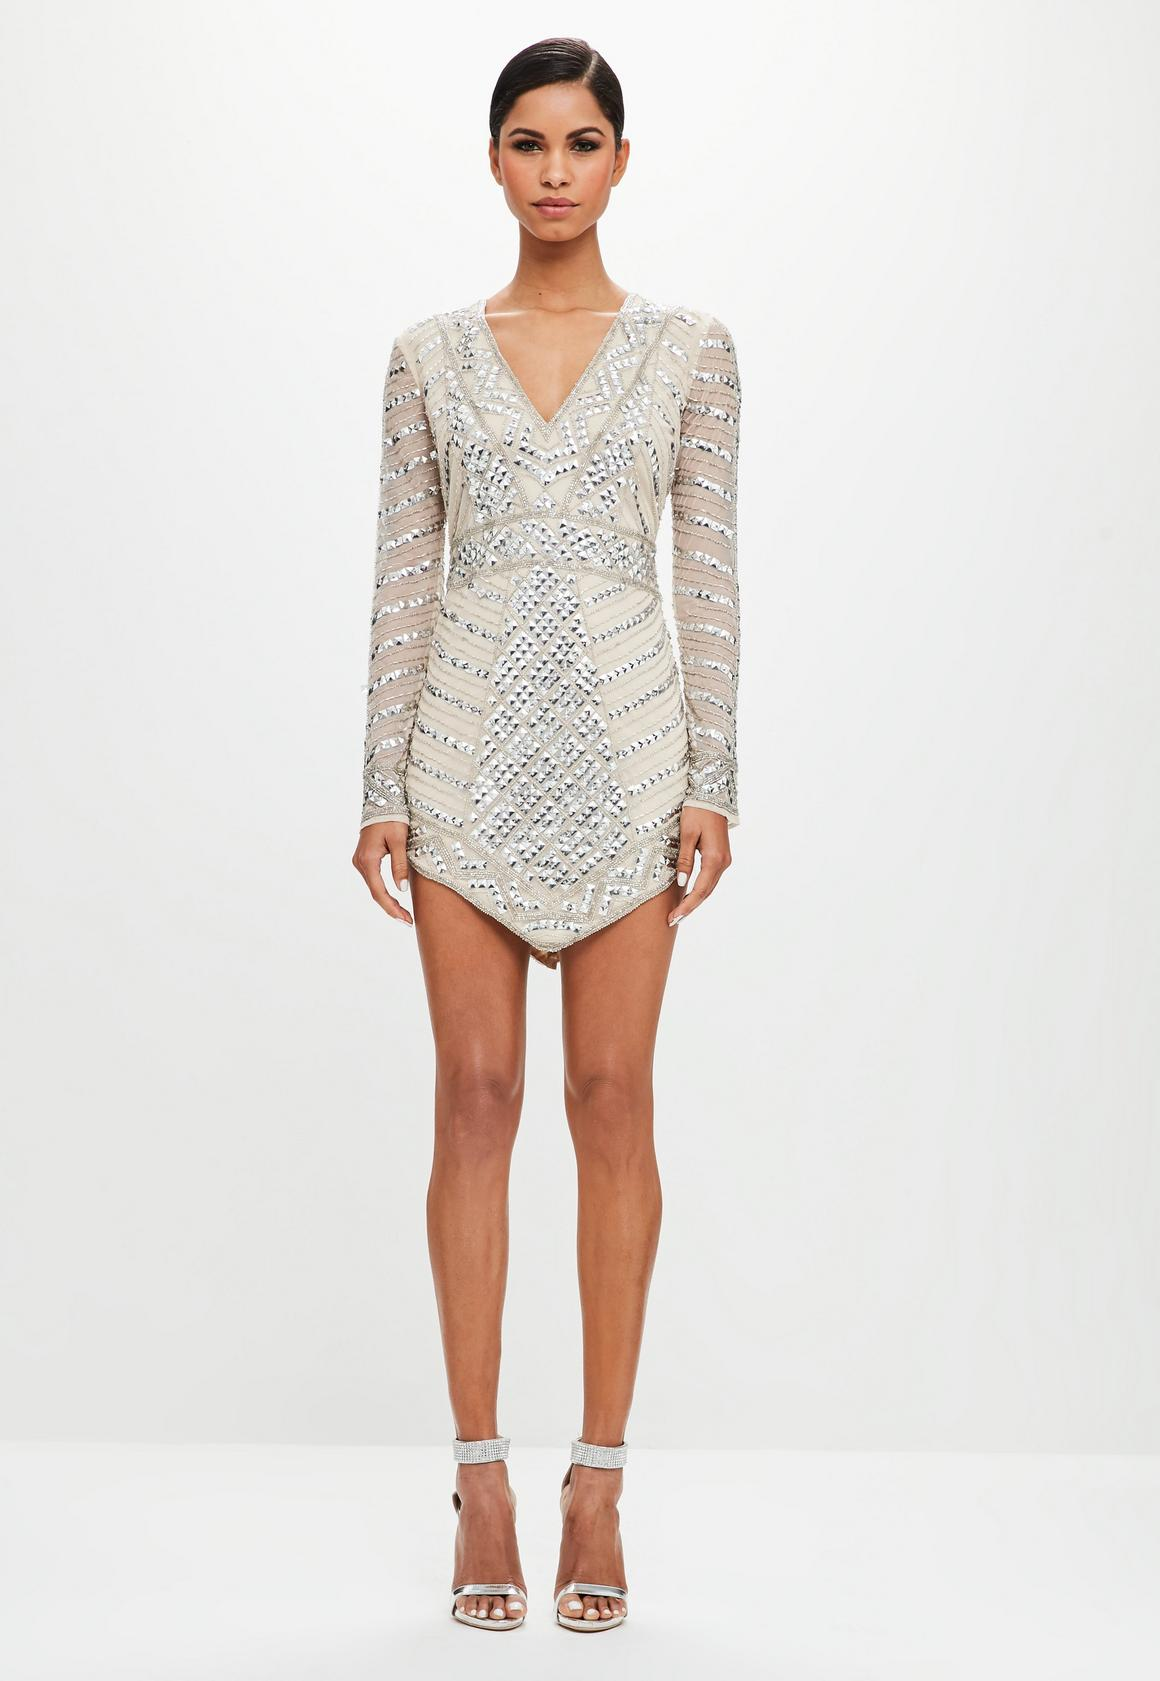 Dress up 247 login -  Peace Love Silver Embellished Triangle Mini Dress